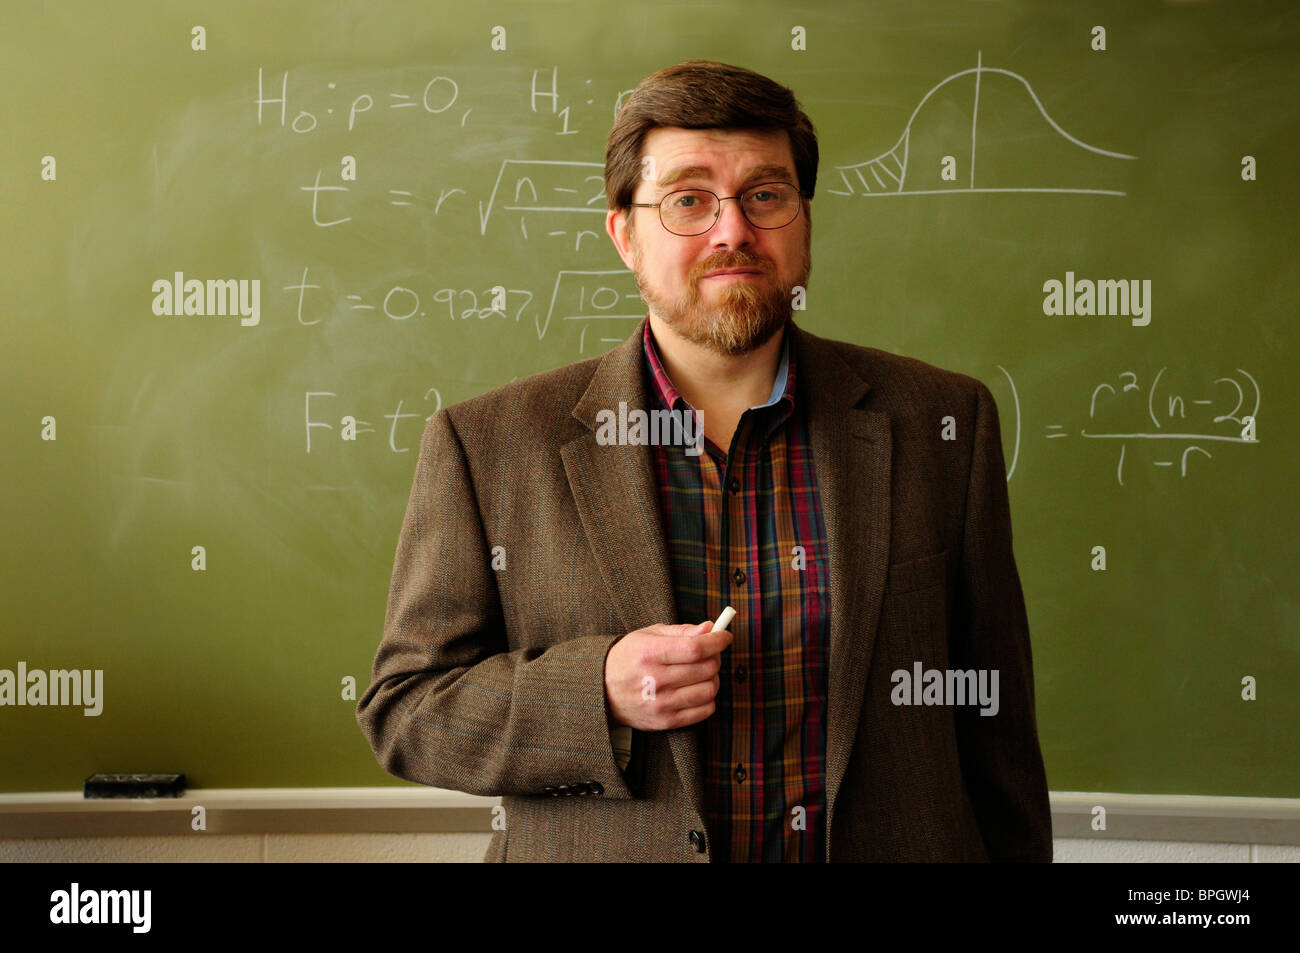 Math professor or teacher standing in a classroom, Statistical formula on chalkboard in background. - Stock Image